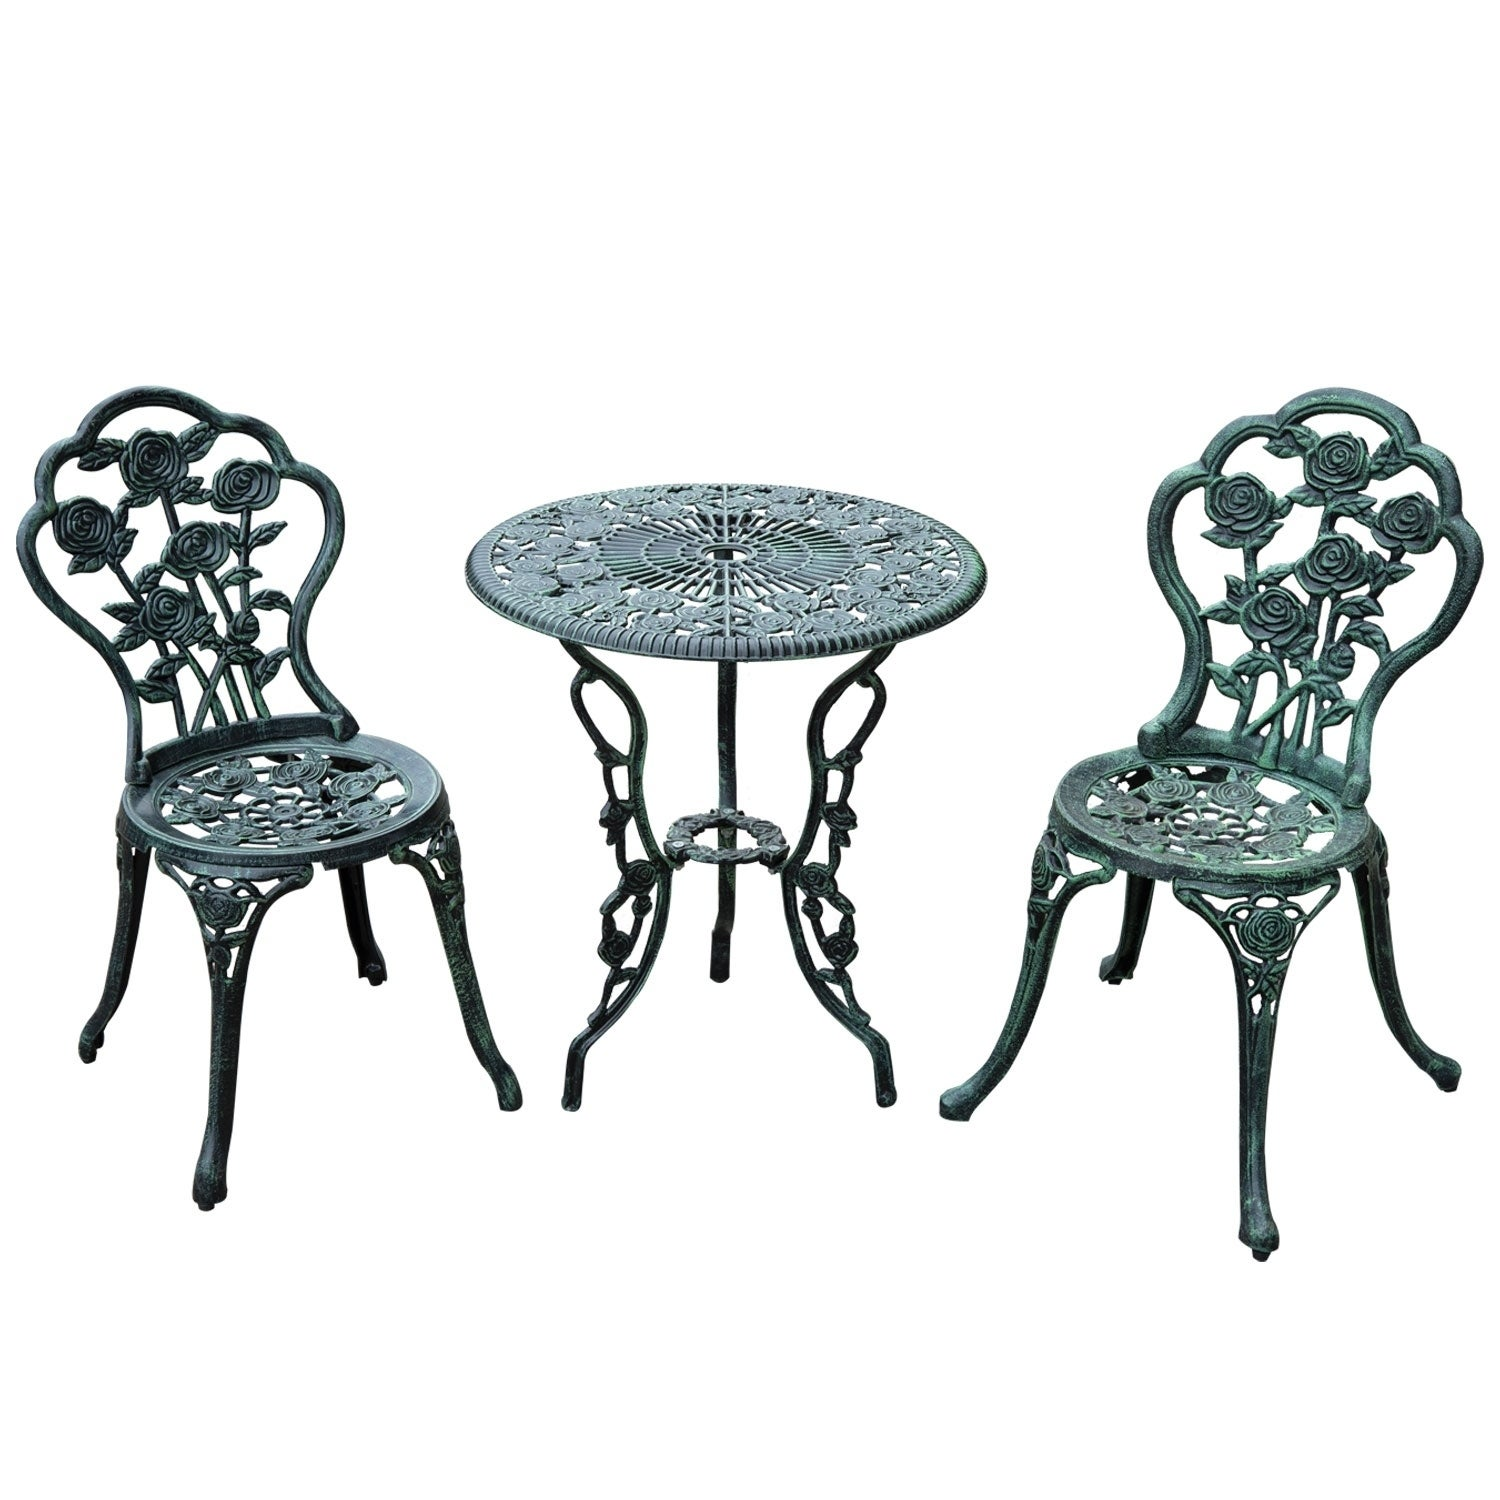 Aosom Outsunny 3 Piece Outdoor Cast Iron Patio Furniture ...